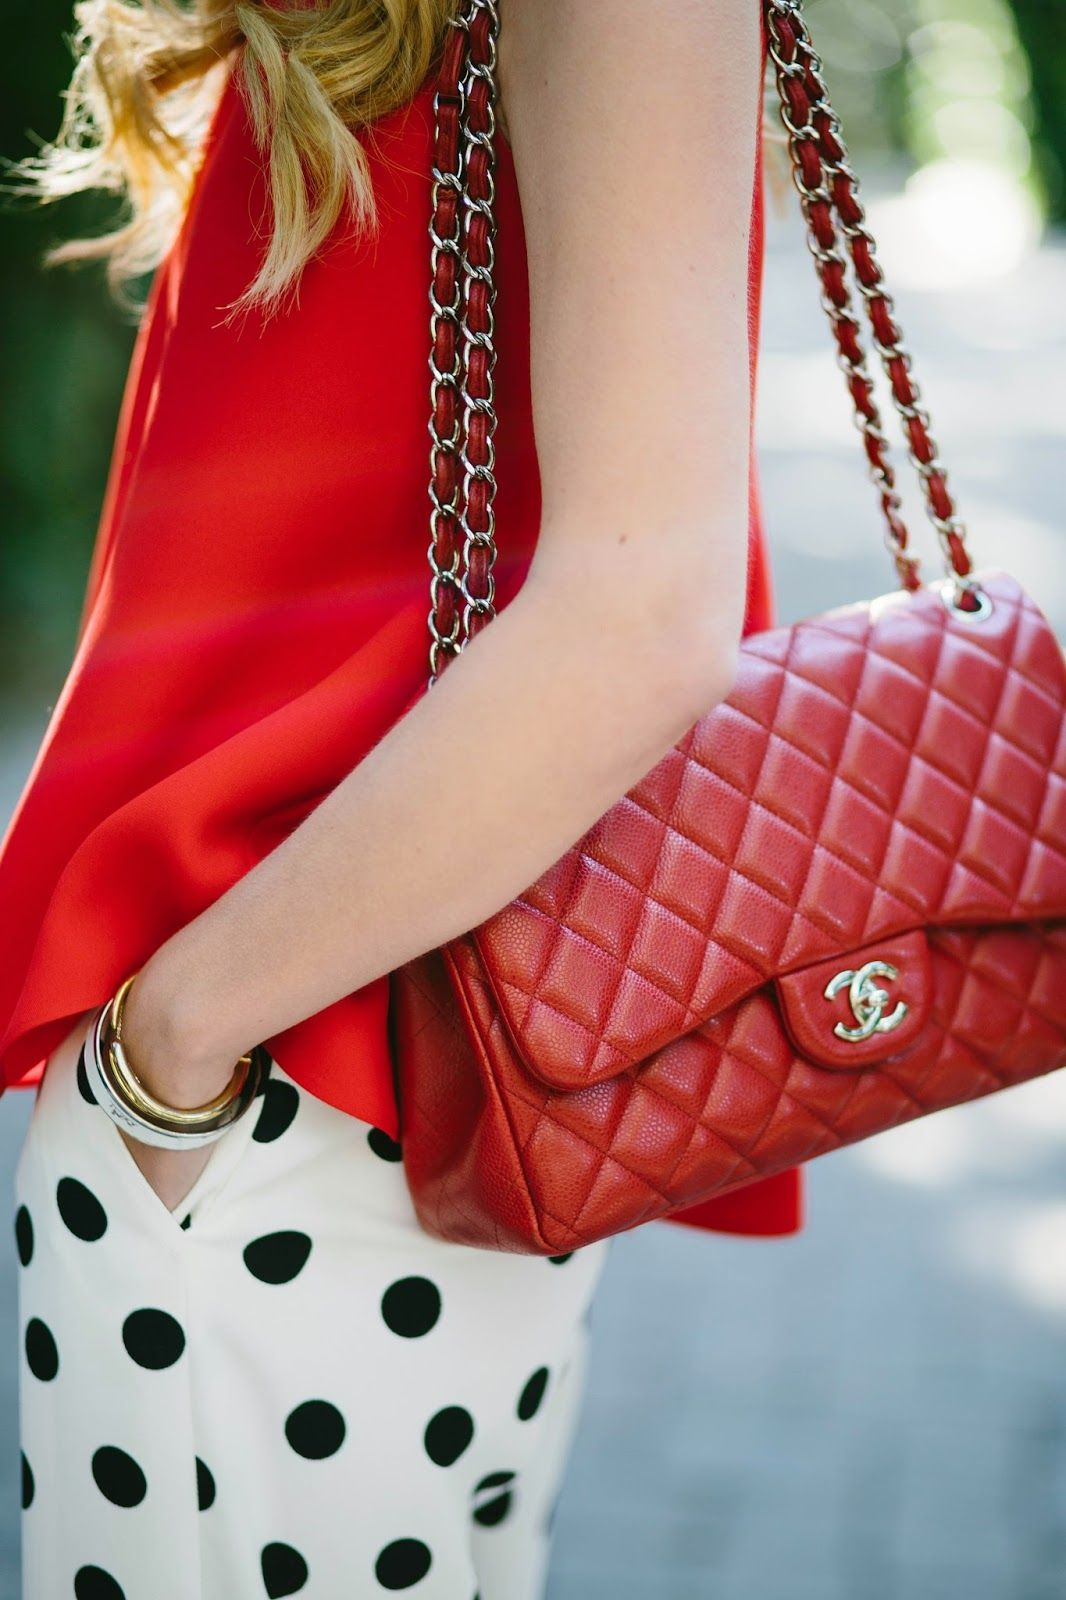 chanel bags classic red. atlantic-pacific // red chanel classic flap bag bags s